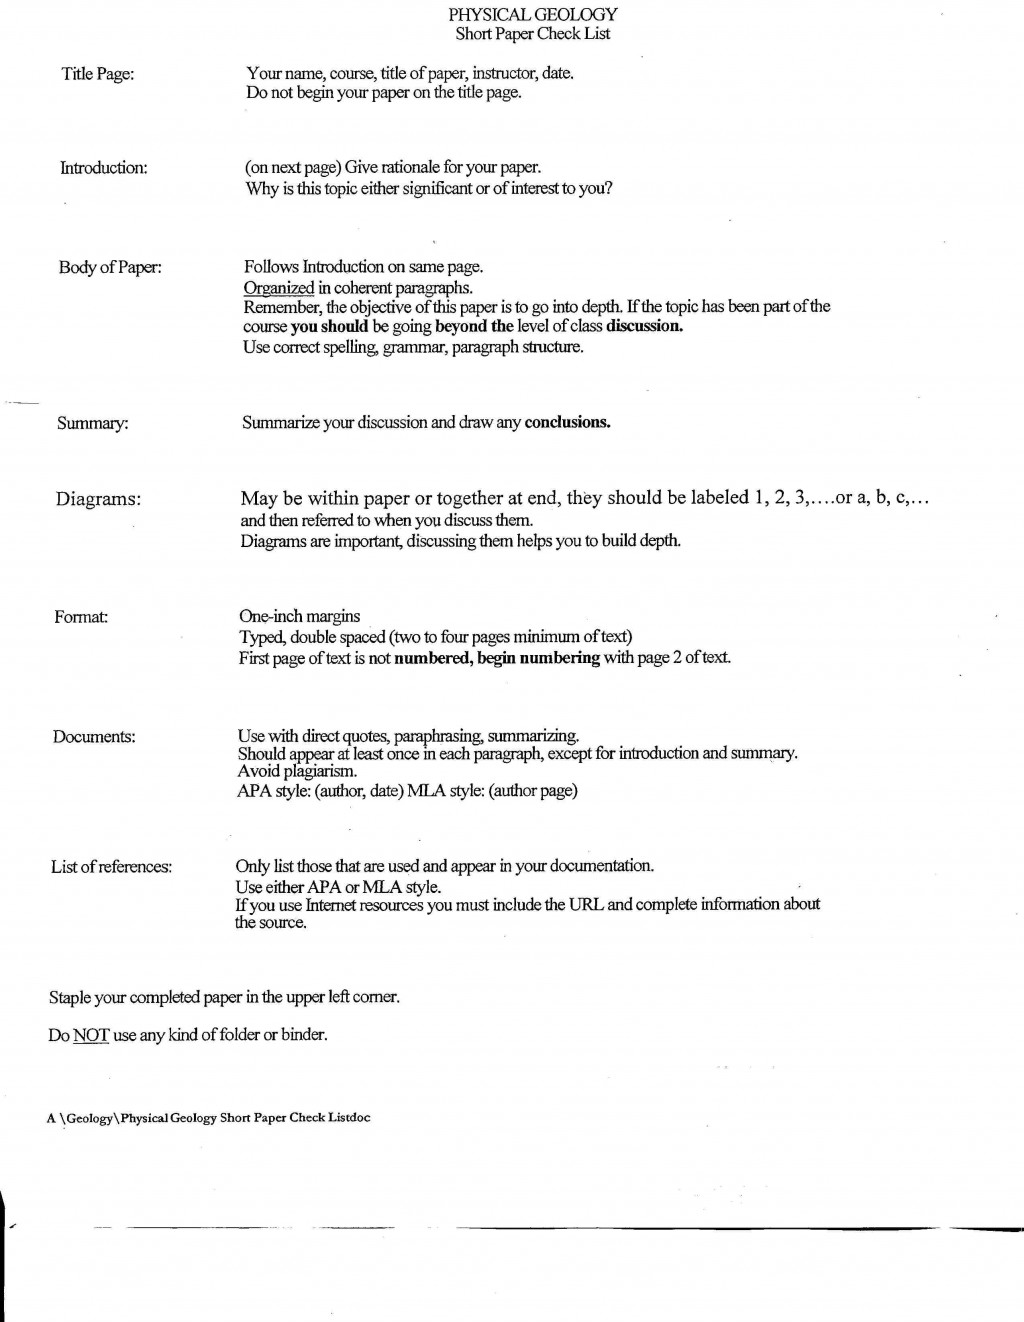 005 Research Paper Short Checklist Best Topics For Formidable College Papers Student Large